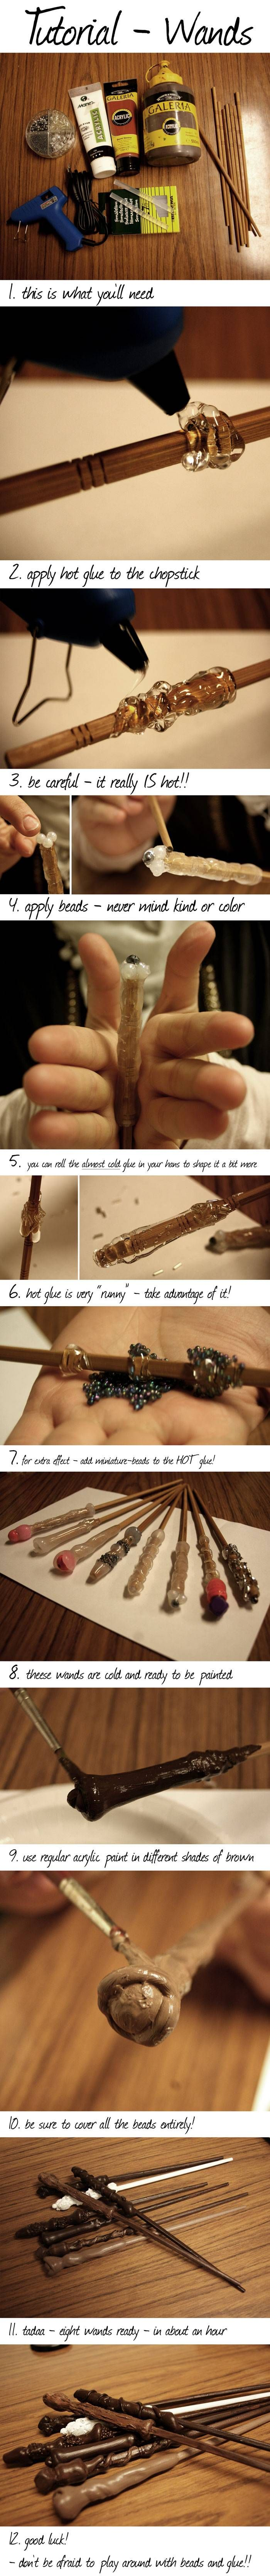 DIY Harry Potter - style wands! Now I know what I'm doing for the next 48 hours.